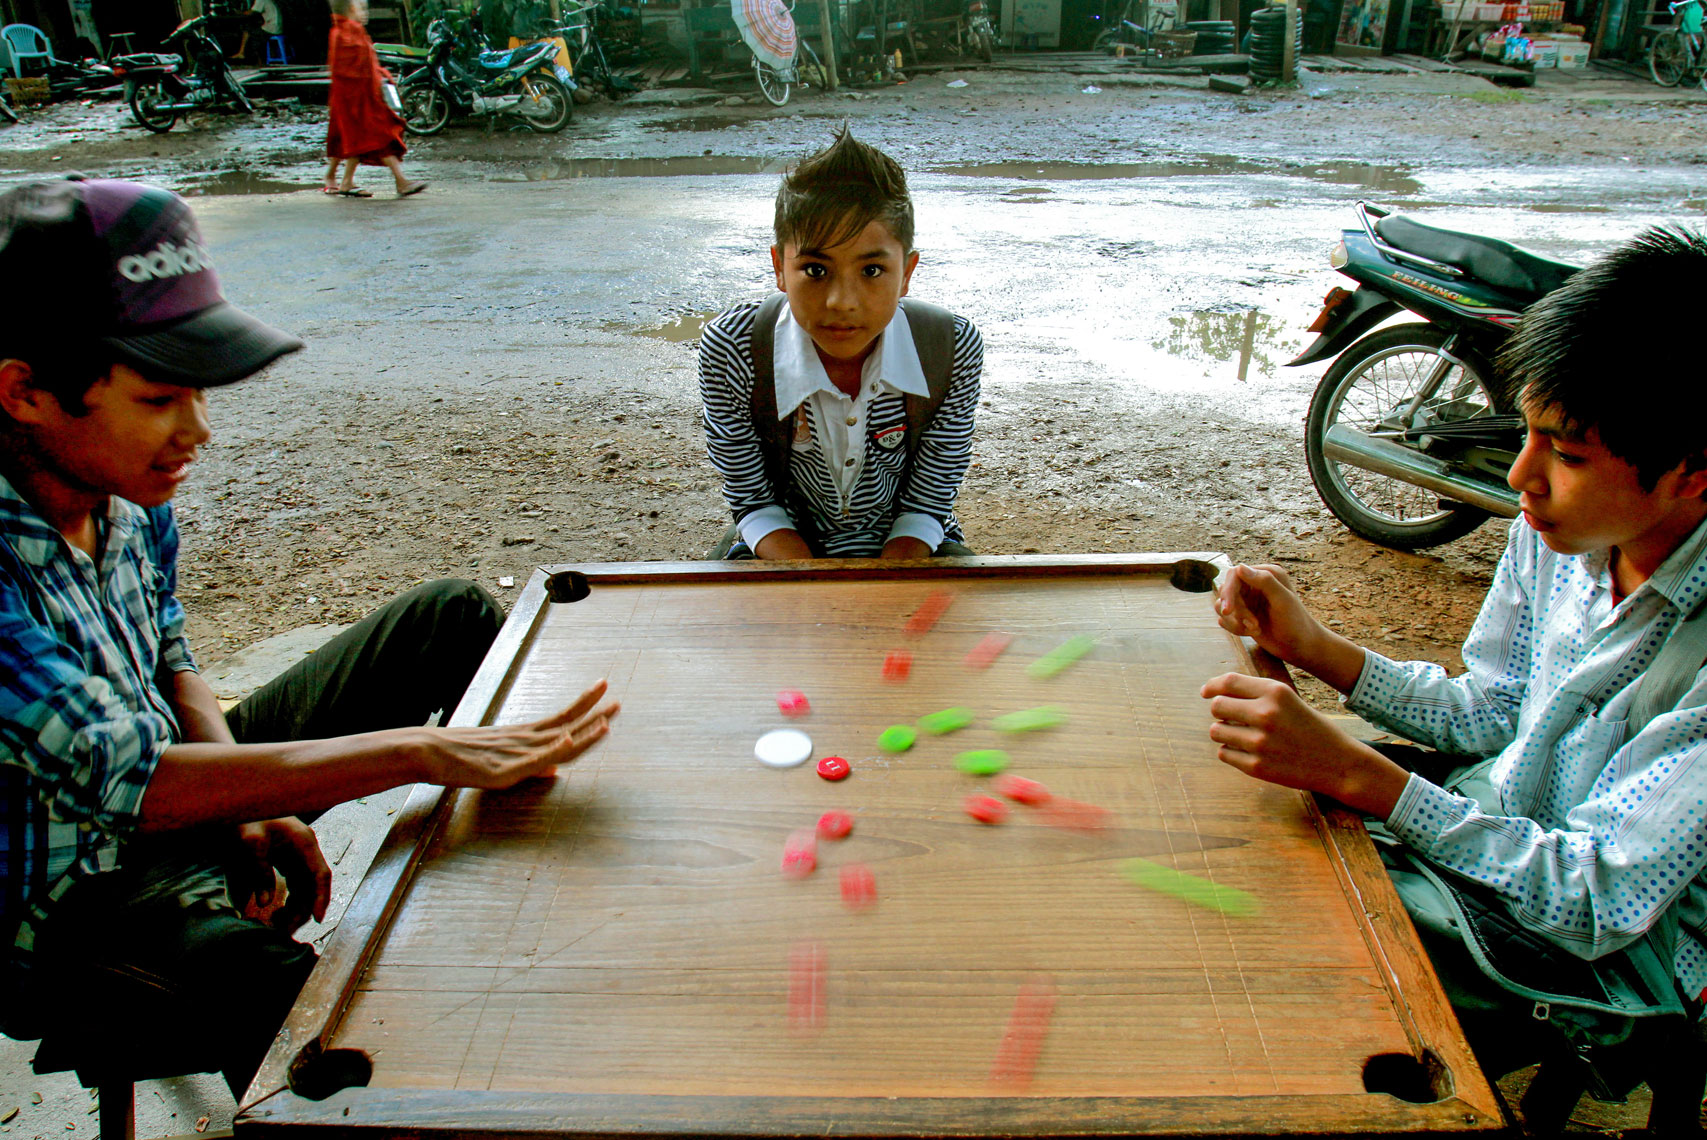 Three boys play carom in the street